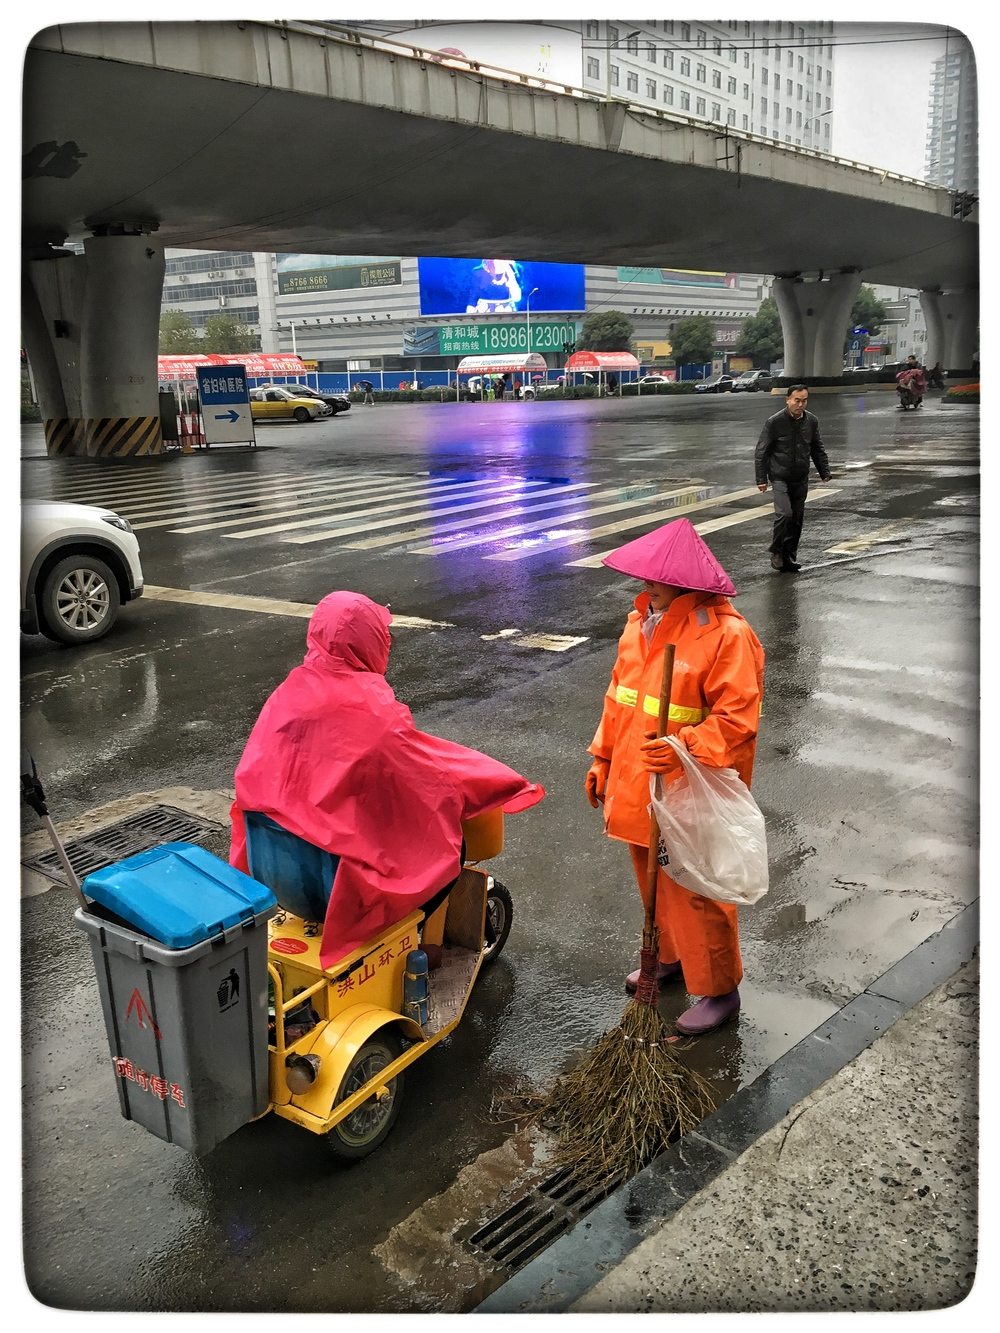 City workers, Wuhan